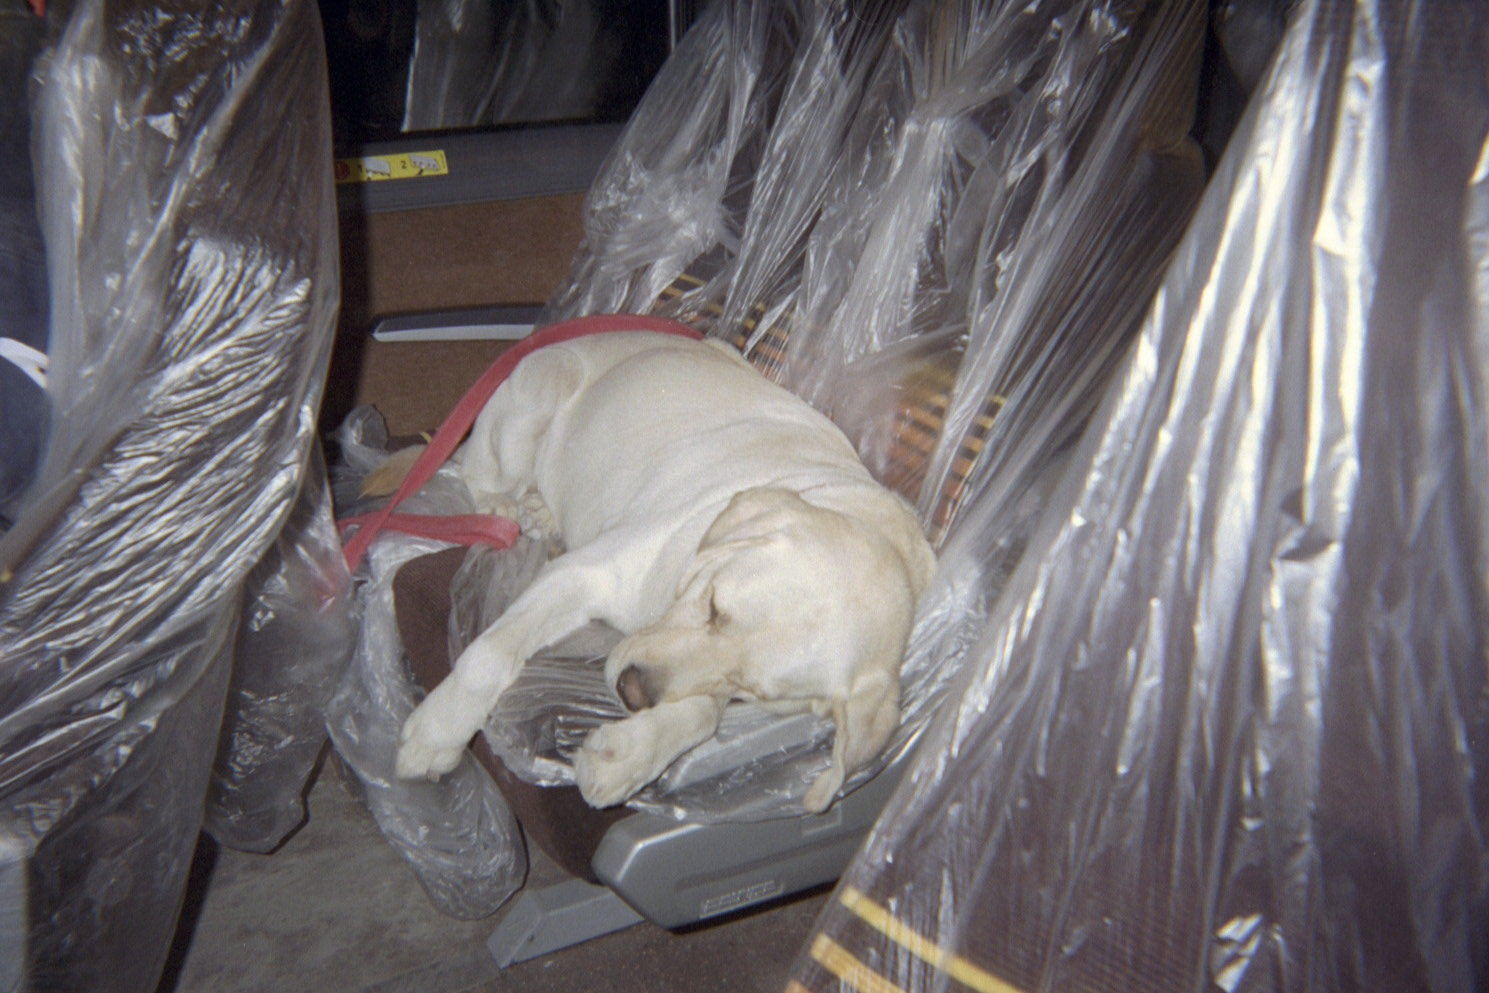 A search and rescue dog resting